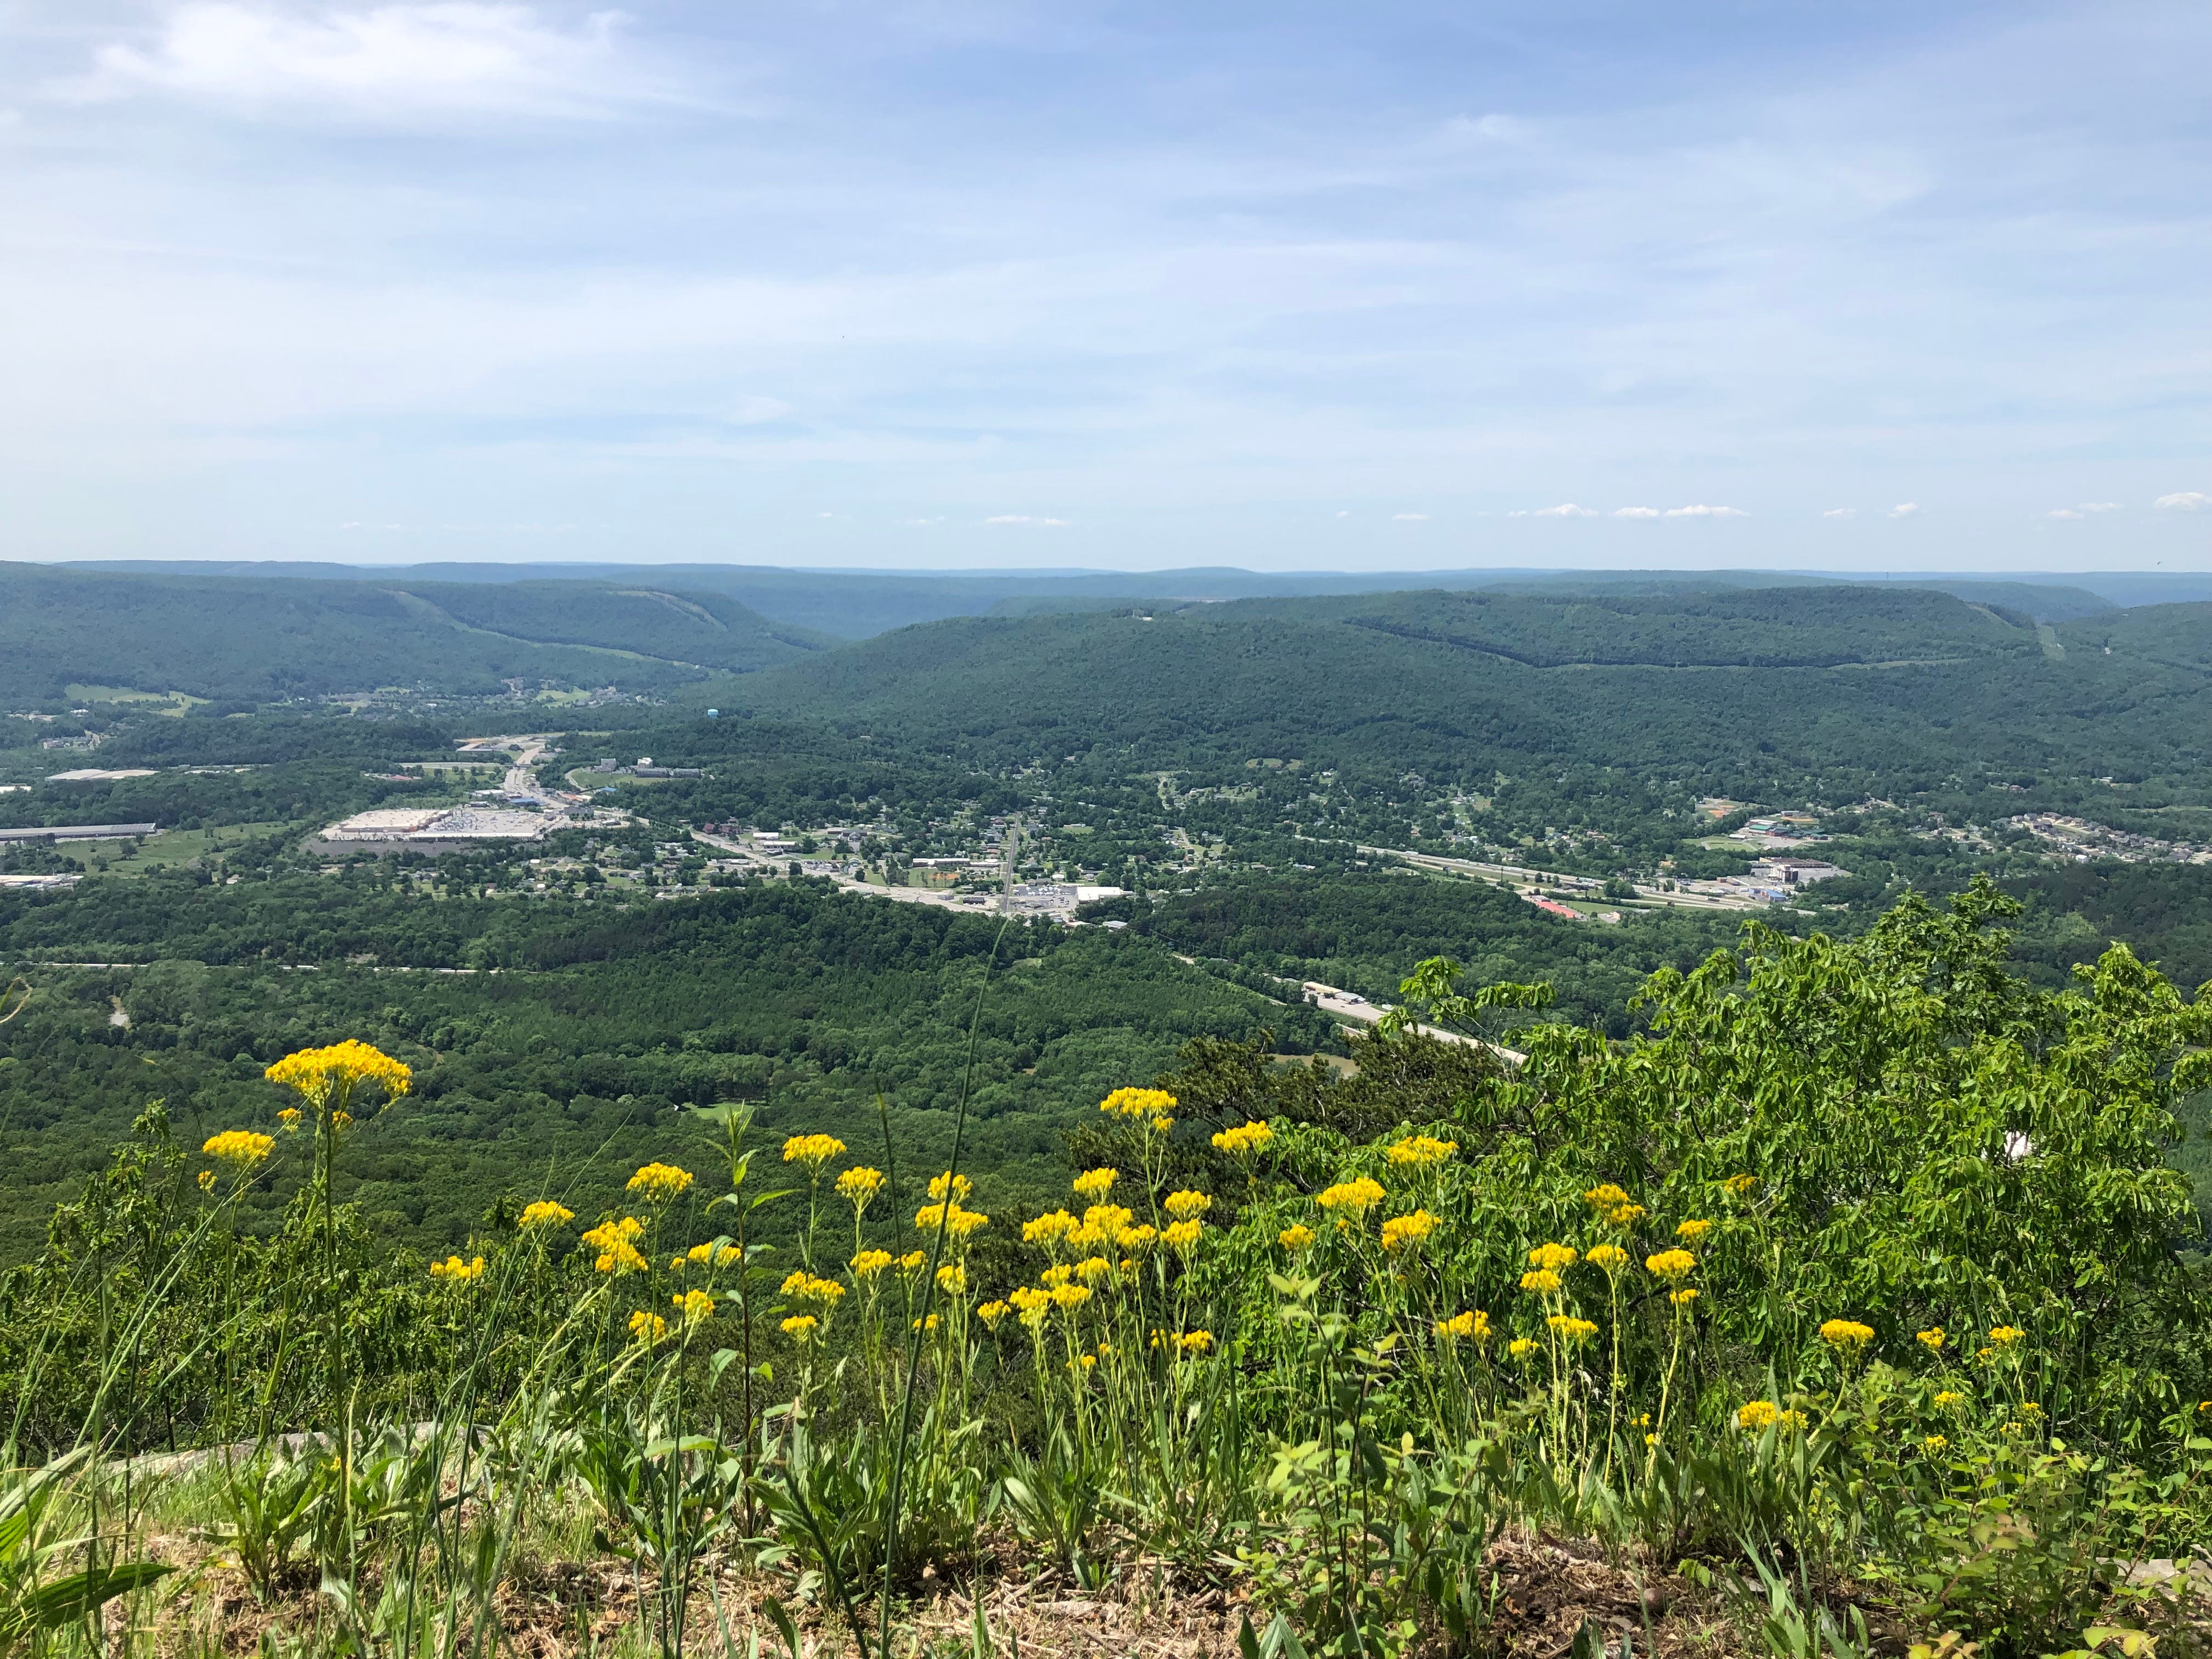 This is a view across Lookout Valley and the flat-topped ridges of the Cumberland Plateau at Point Park in Chattanooga. Photographed May 7, 2019